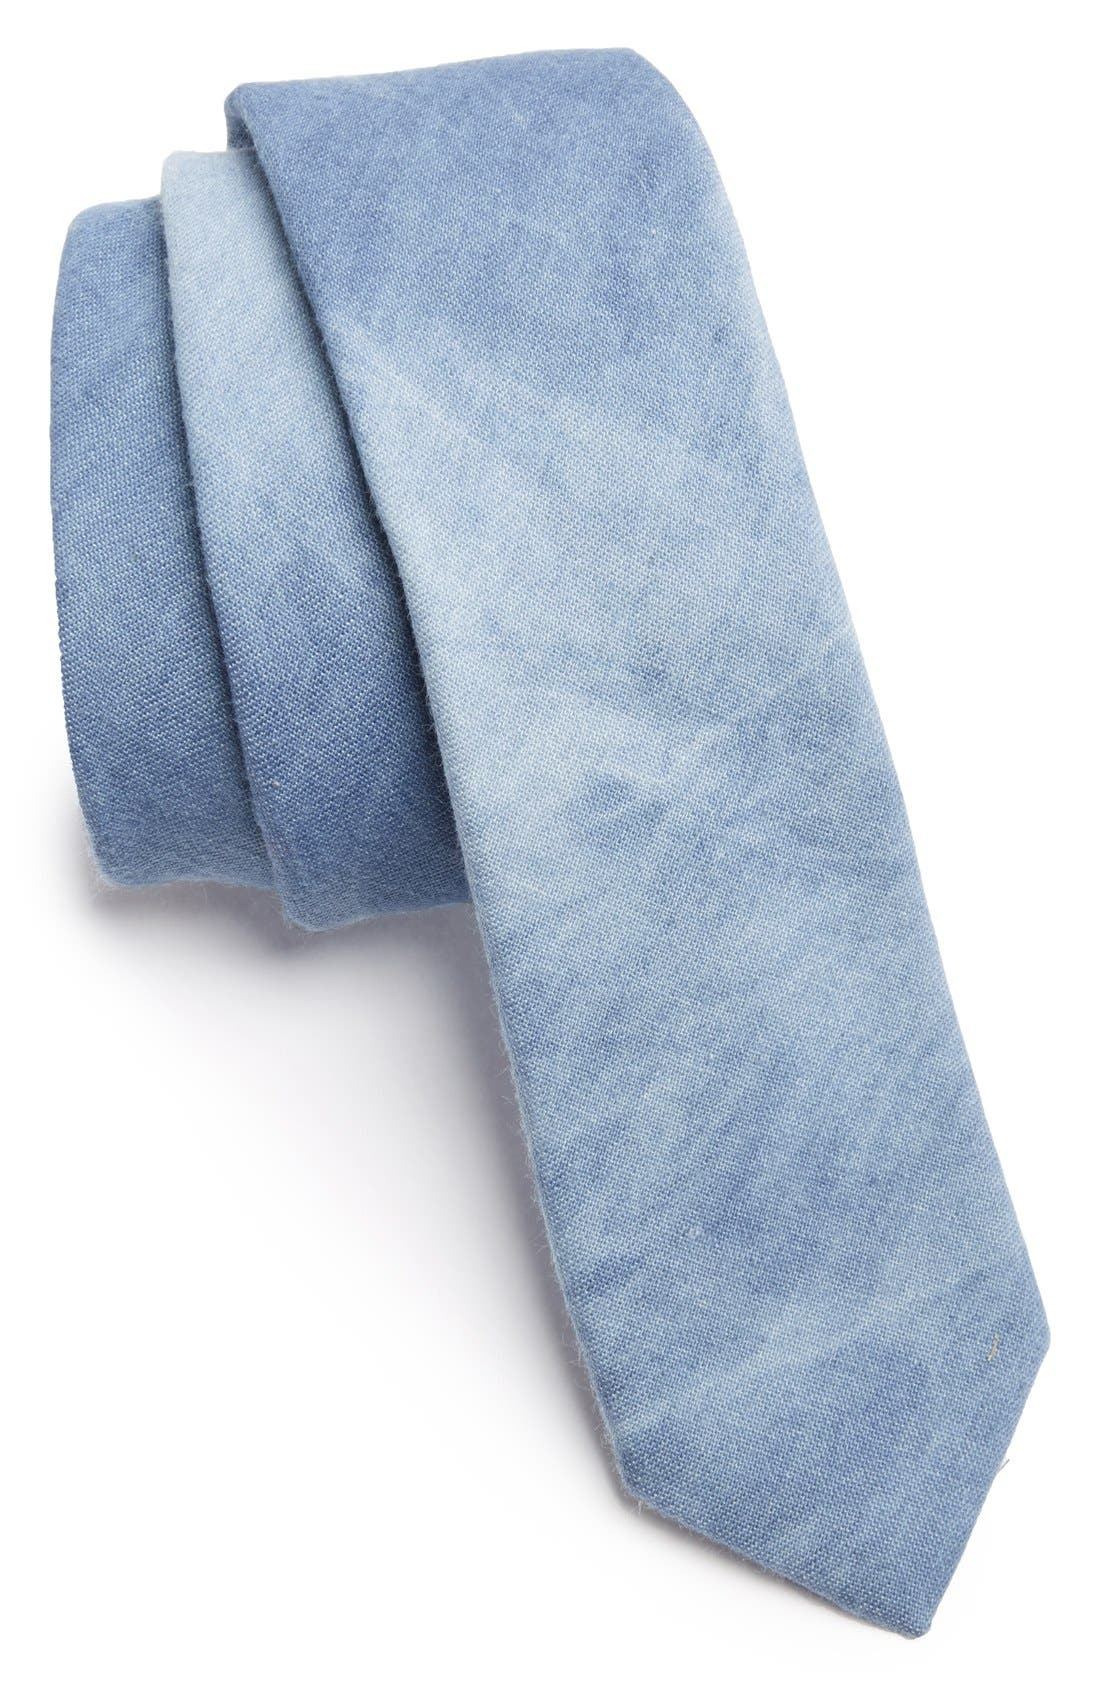 Alternate Image 1 Selected - C2 by Calibrate Woven Cotton Tie (Big Boys)